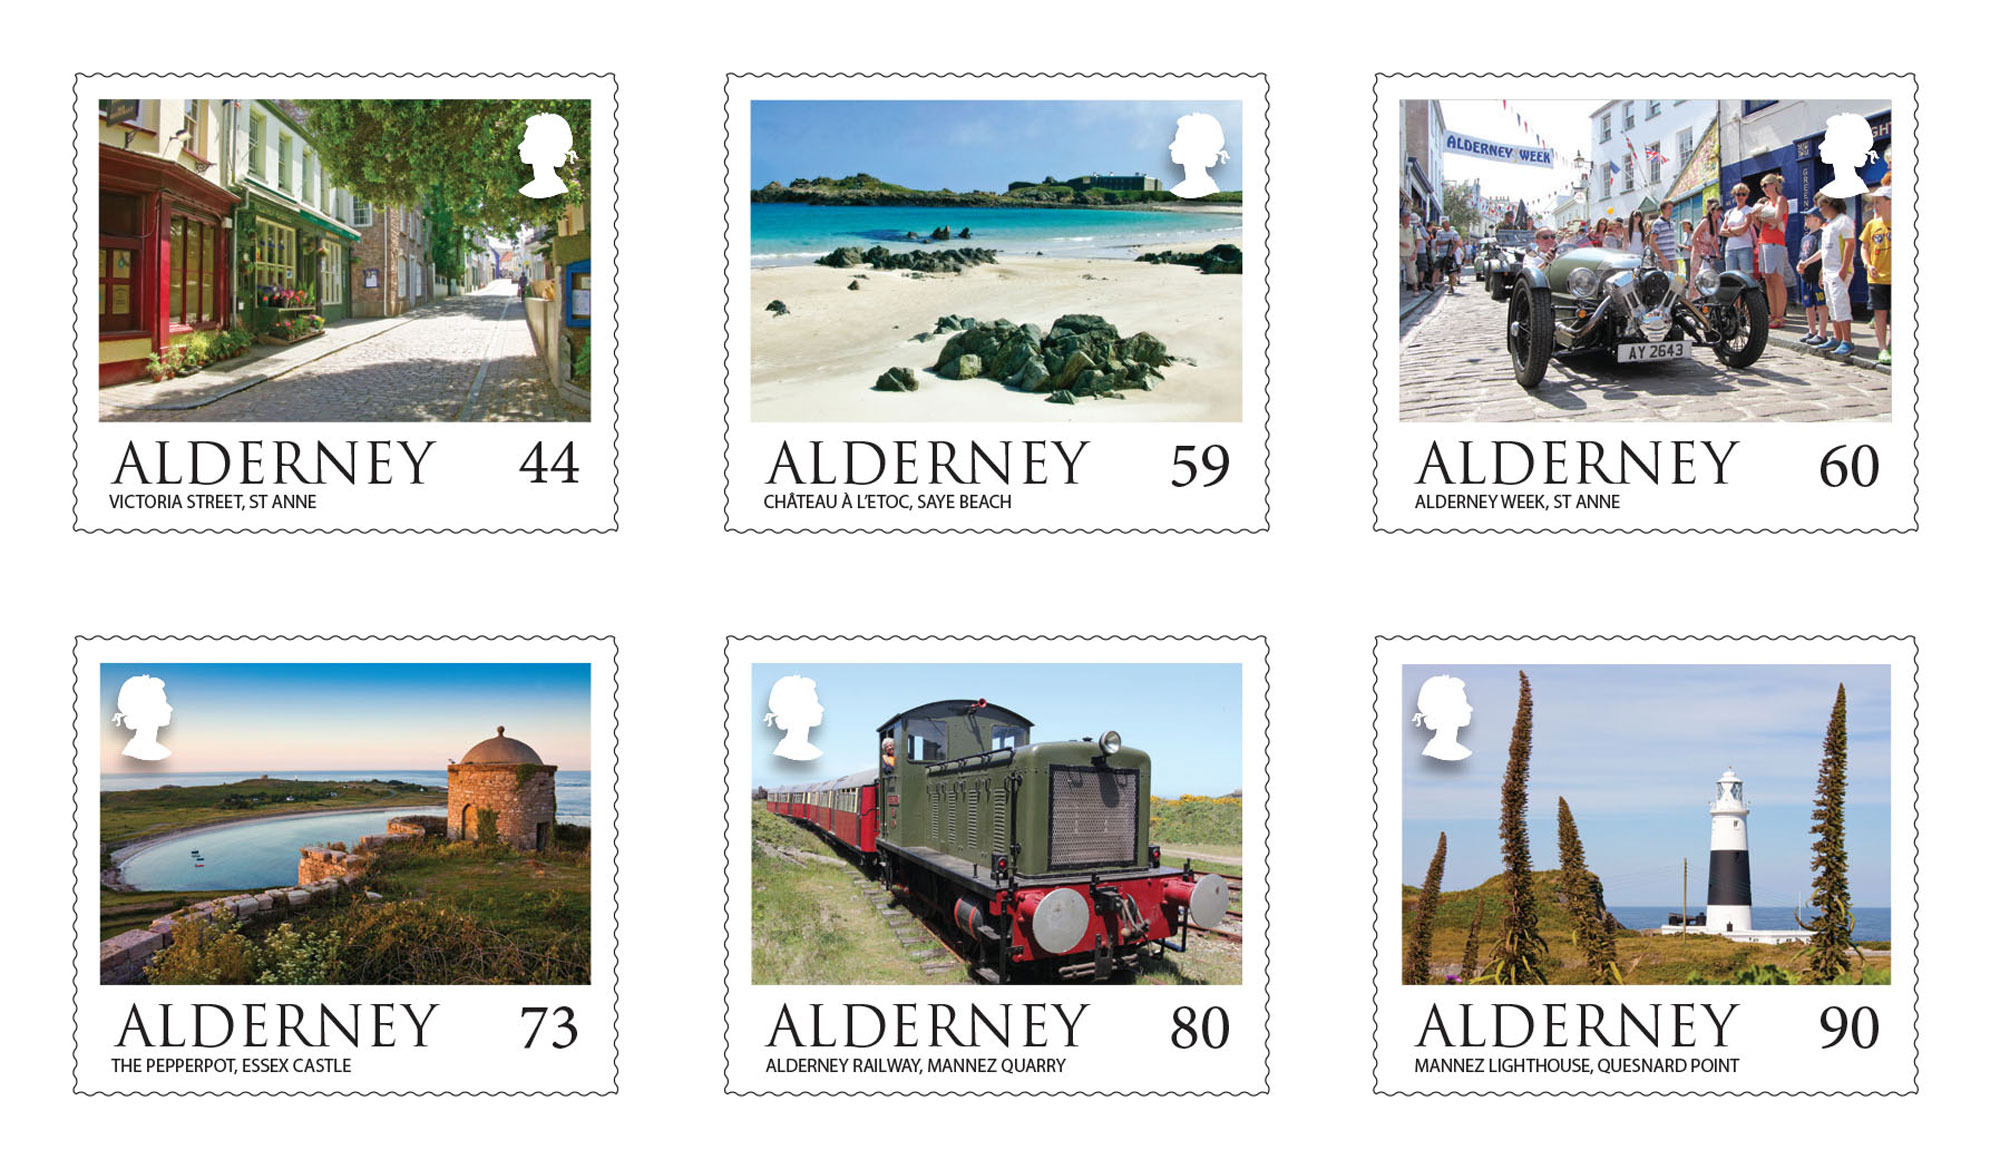 Alderney's beauty celebrated on stamps